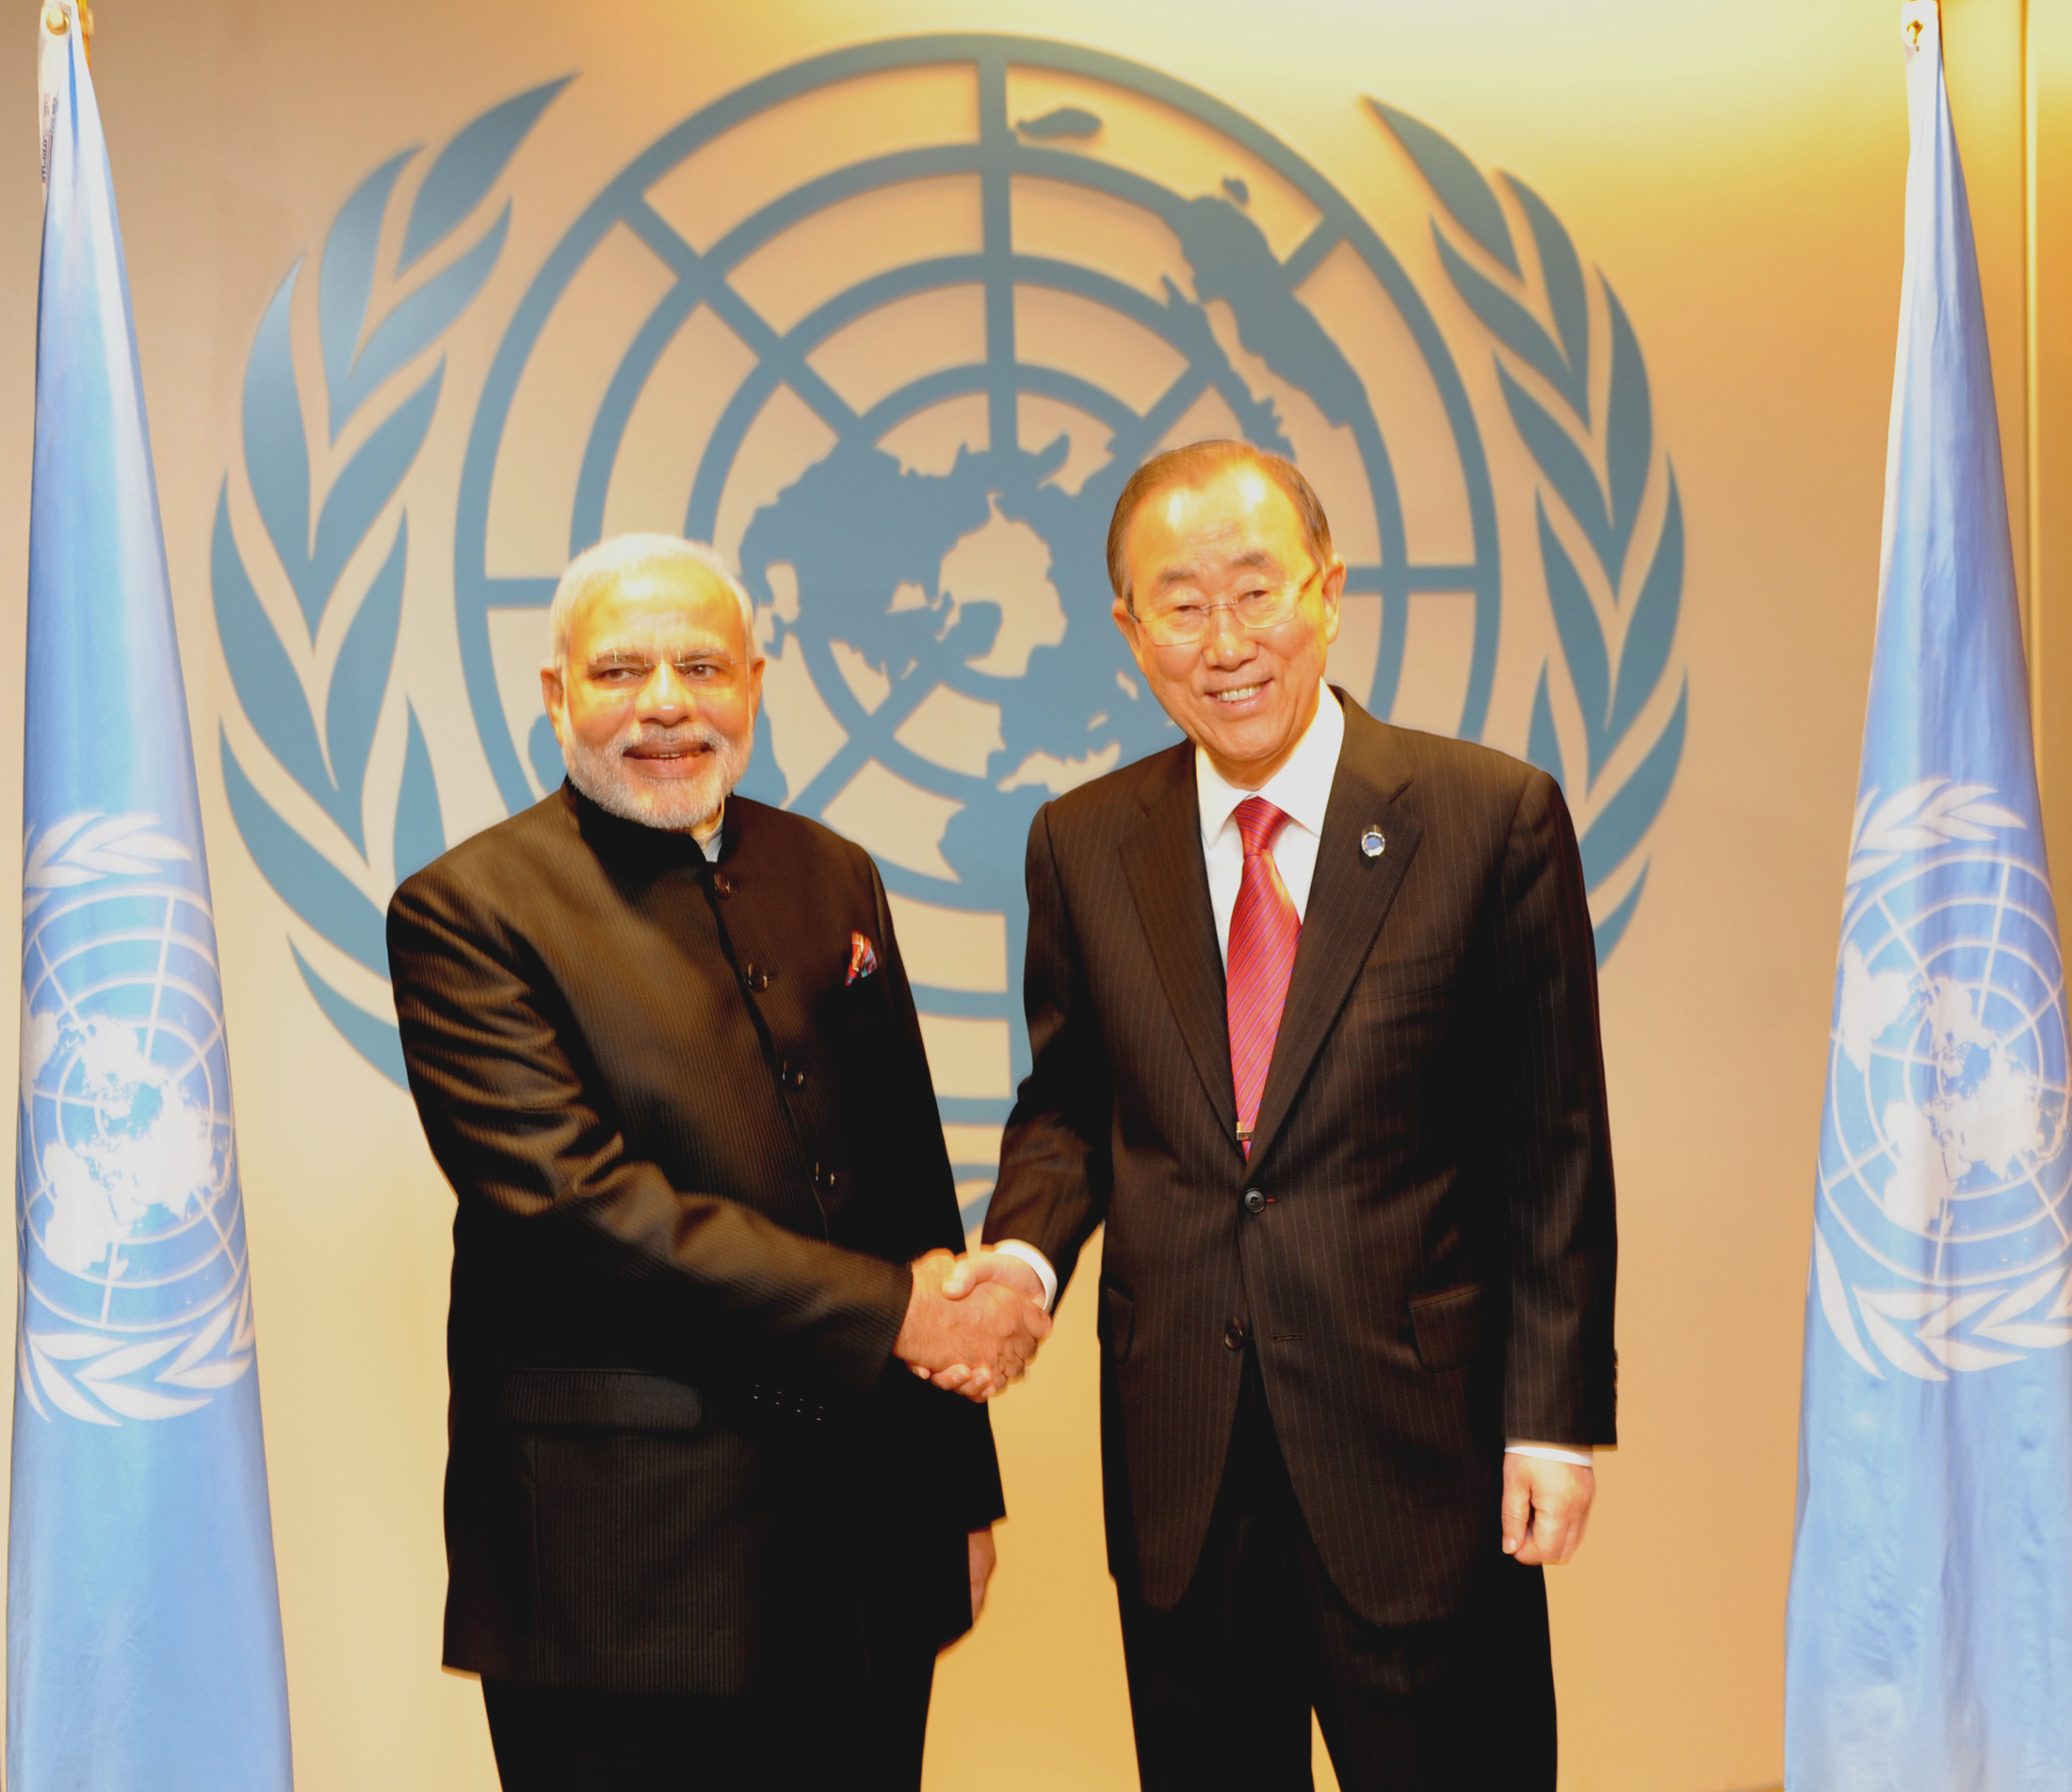 Prime Minister Narendra Modi meets Ban Ki-moon at the UN headquarters